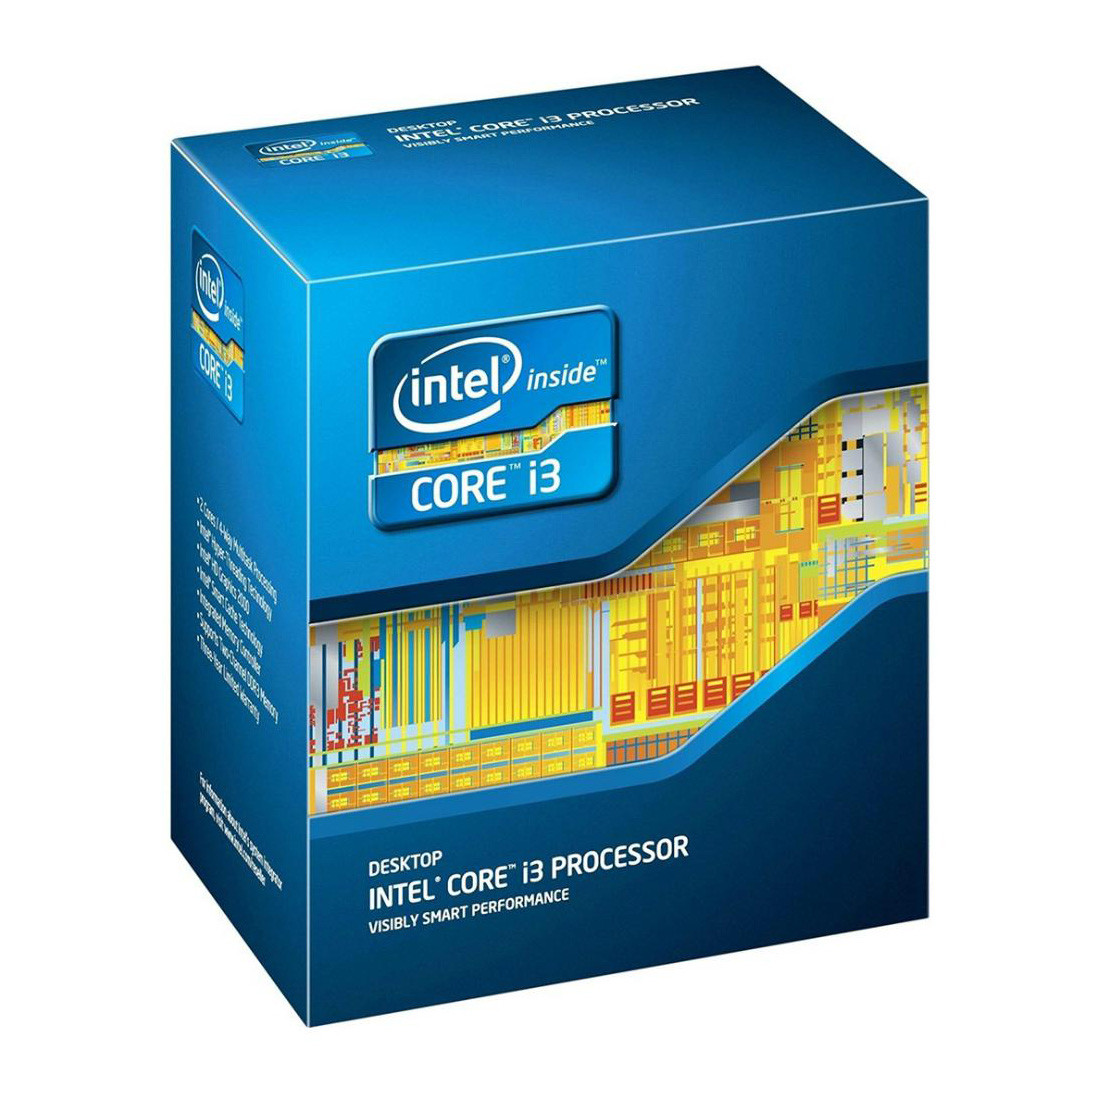 Процессор INTEL Core™ i3 3220 3.30GHz/3M/5GT/s (BX80637I33220) s1155, BOX